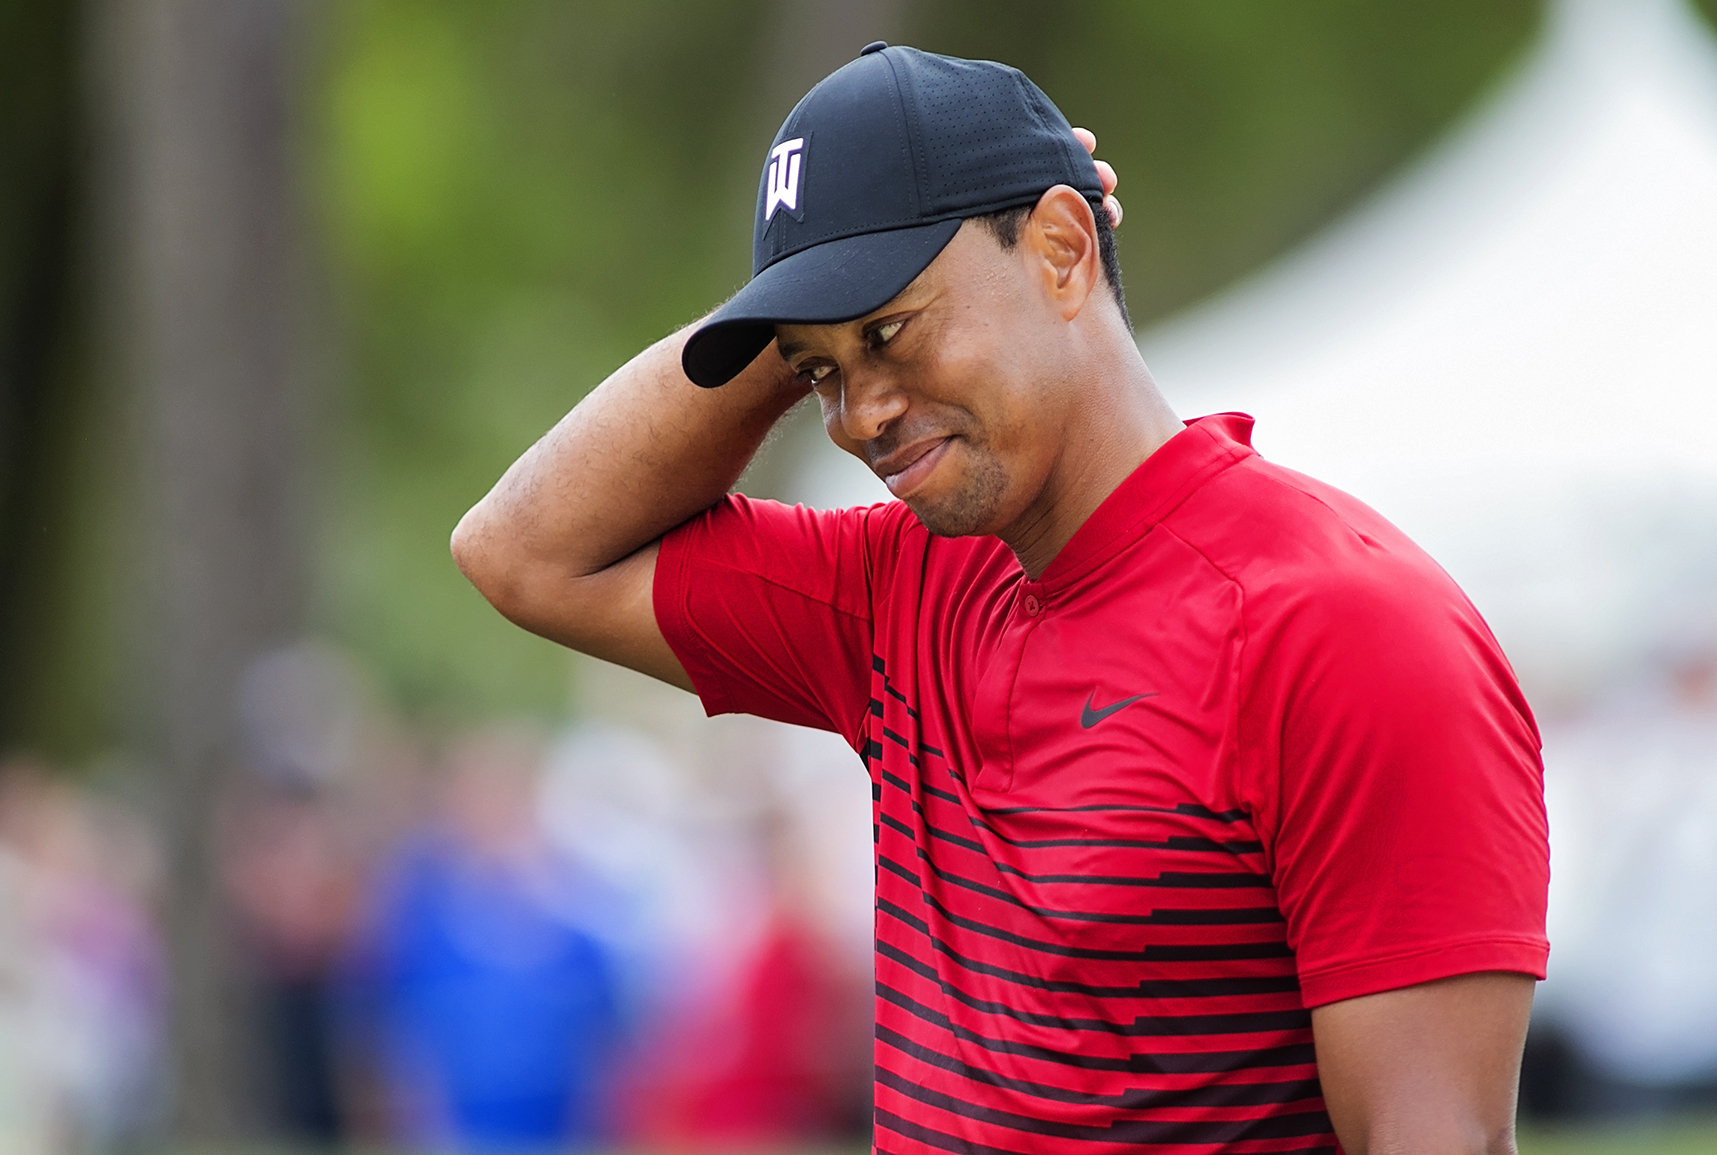 Woods didn't figure out his irons on Sunday./CARMEN MANDATO